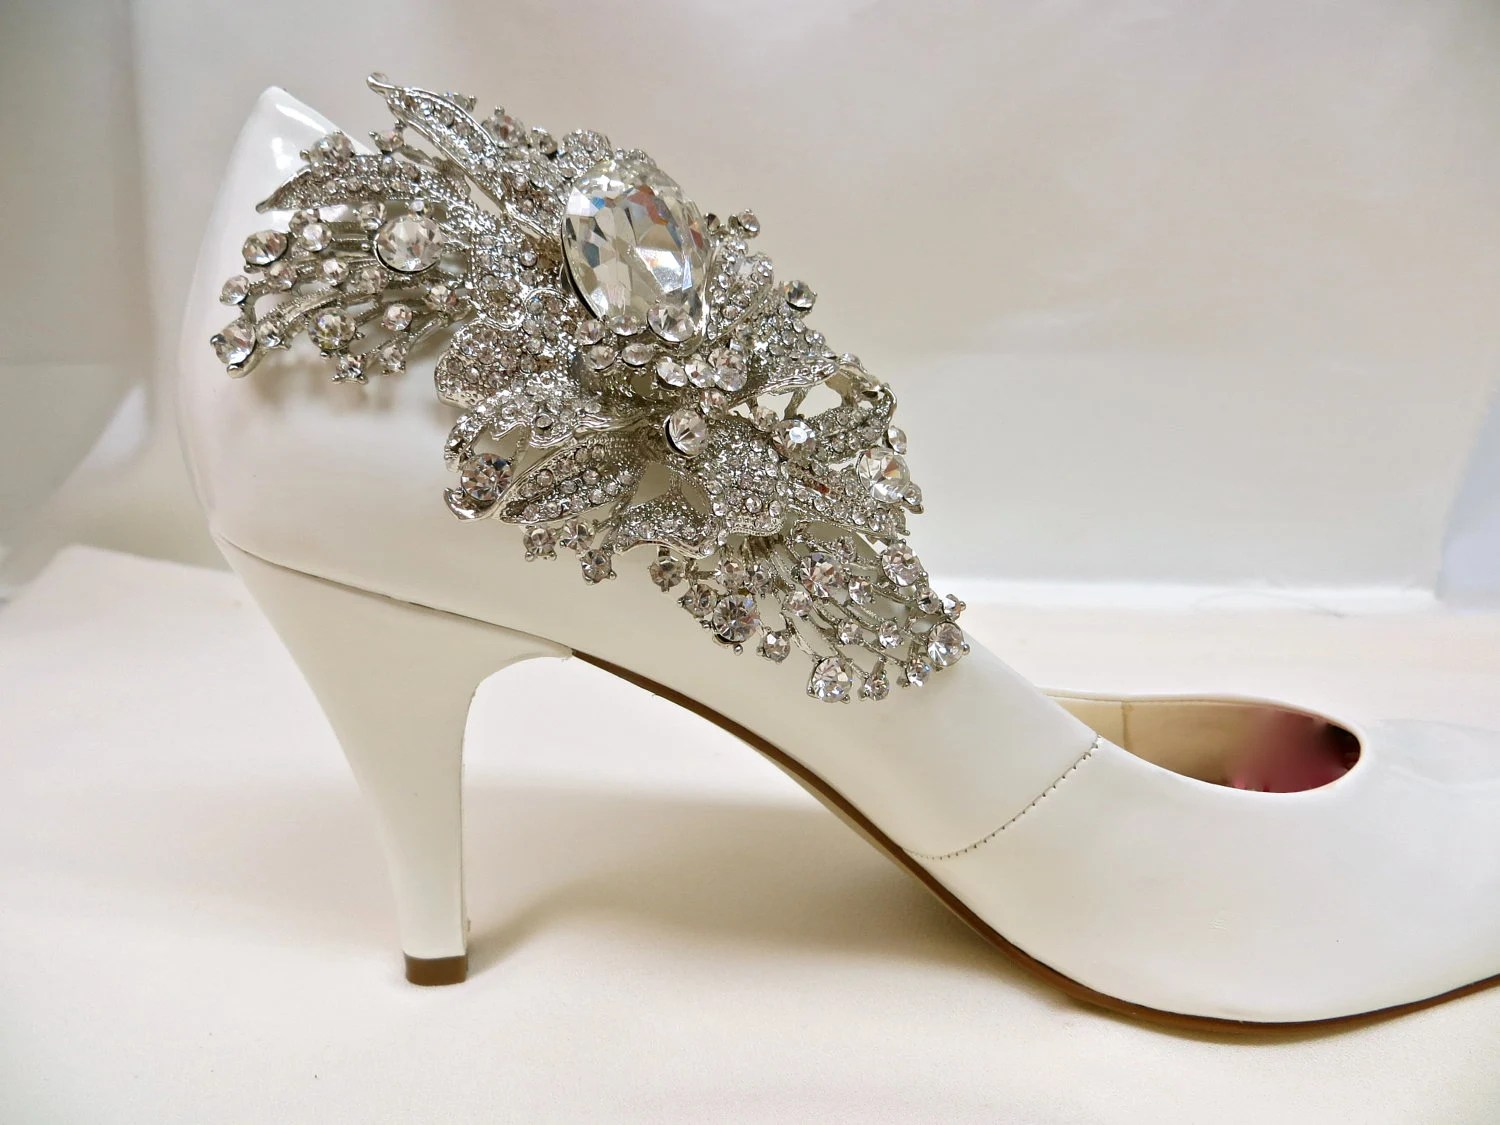 Bridal Shoe Clip-Crystal Jewel-Sparkling Rhinestone-Rhinestone Applique-Bridal Party-Set of 2 - ctroum